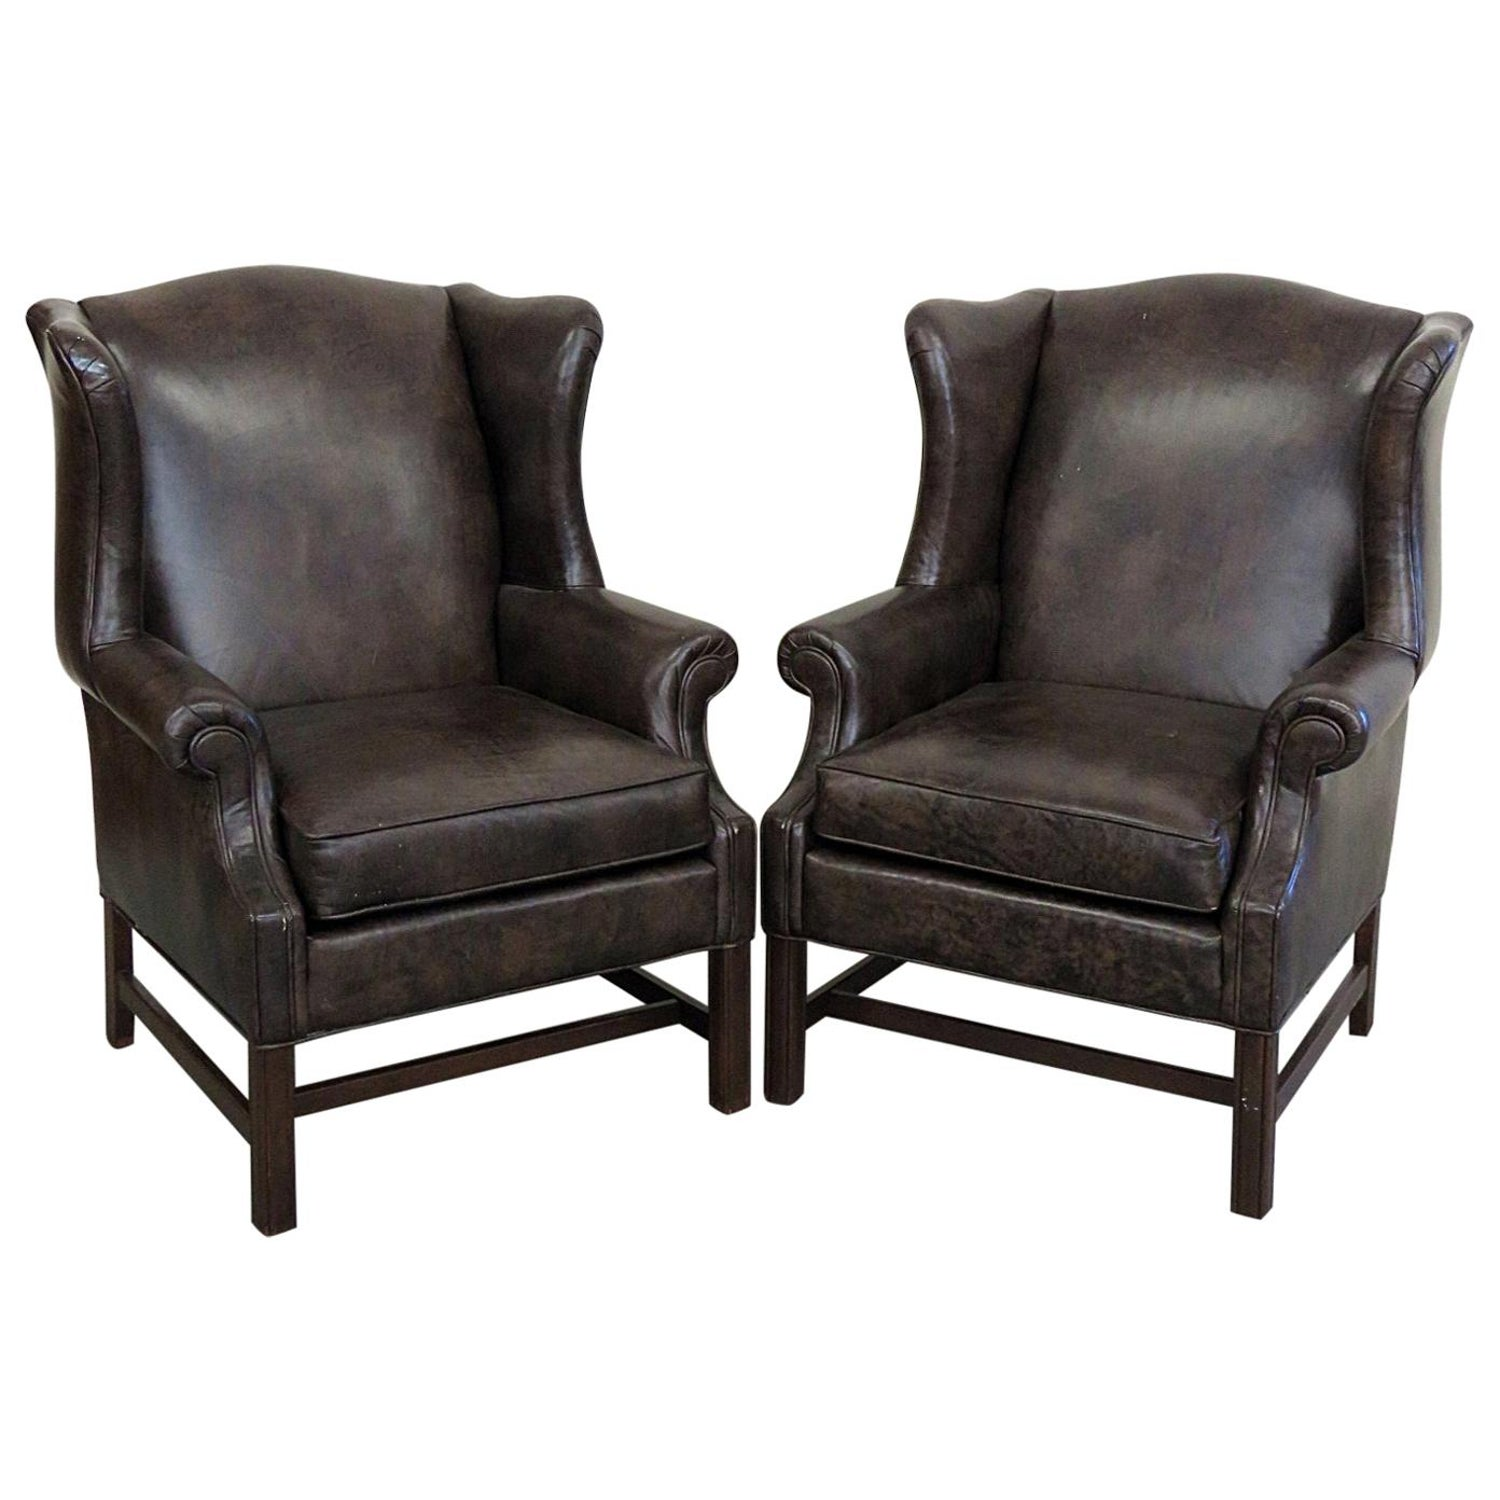 Strange Pair Of Ethan Allen Leather Wingback Chairs For Sale At 1Stdibs Short Links Chair Design For Home Short Linksinfo